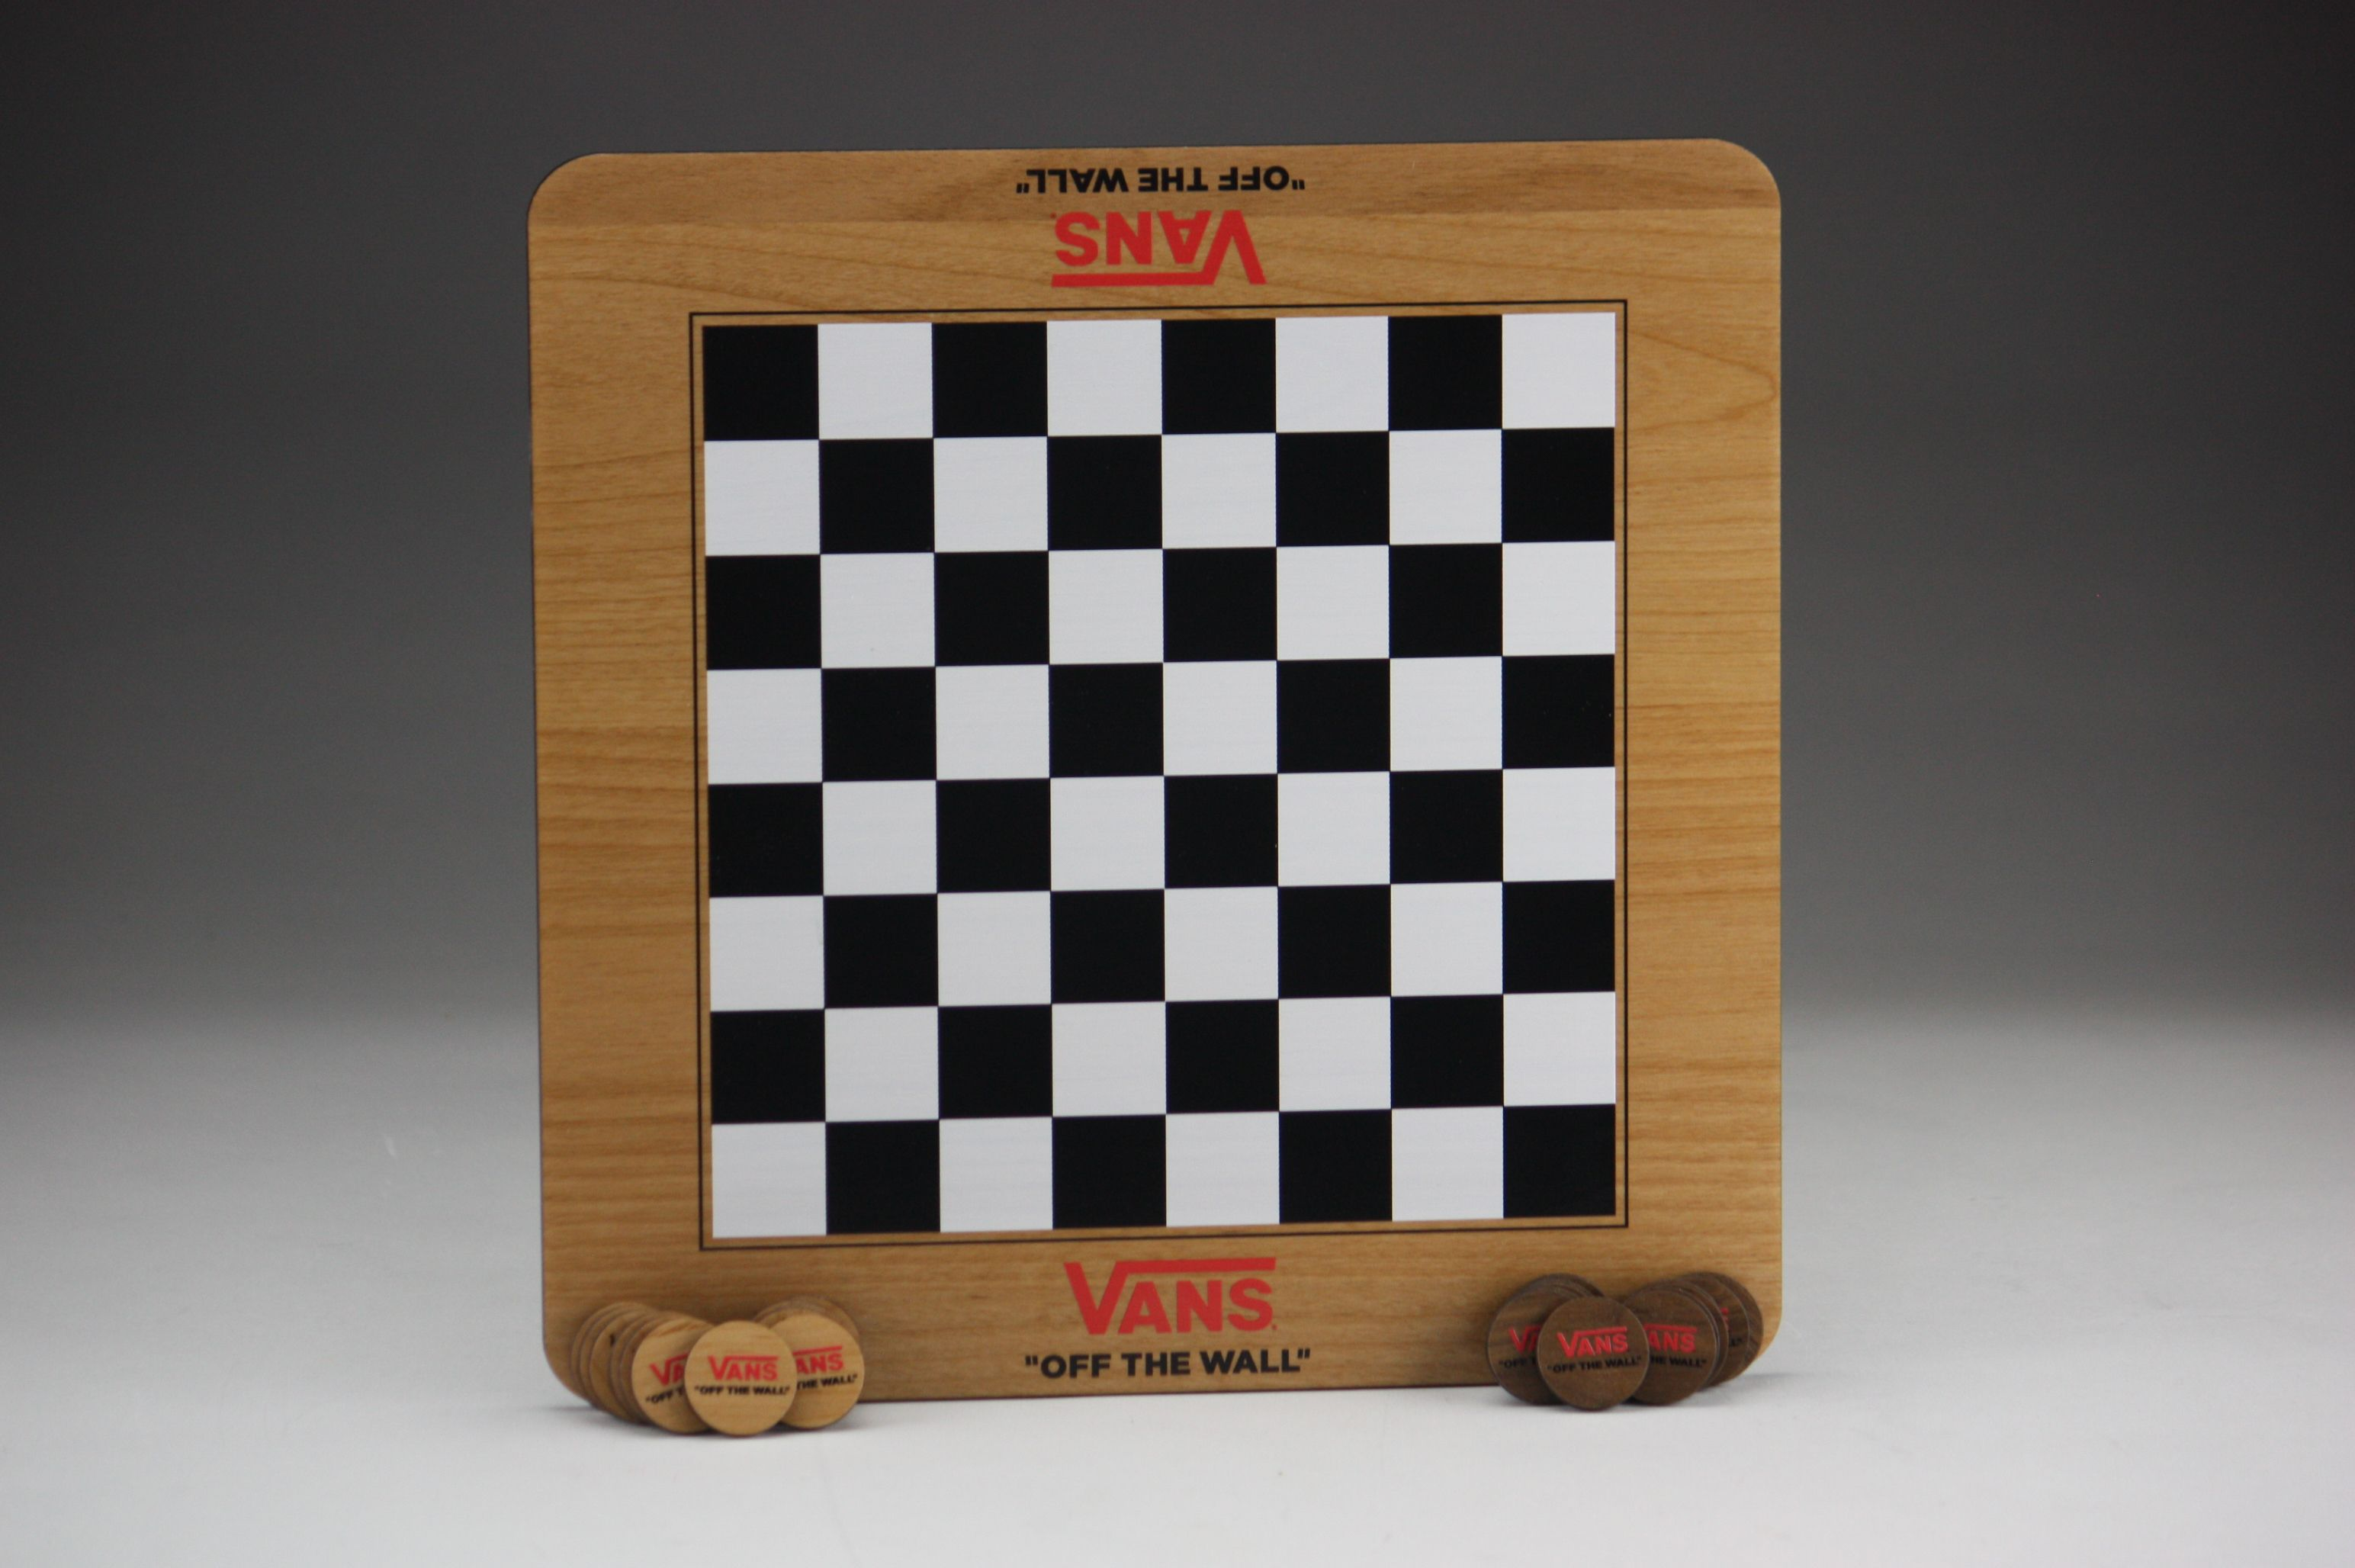 We Love Vans Shoes So Were Psyched To Make These Wooden Checkerboards For Them Wood Games Checkers Checkerboard How To Memorize Things Custom Wood Games Pictures of a checker board